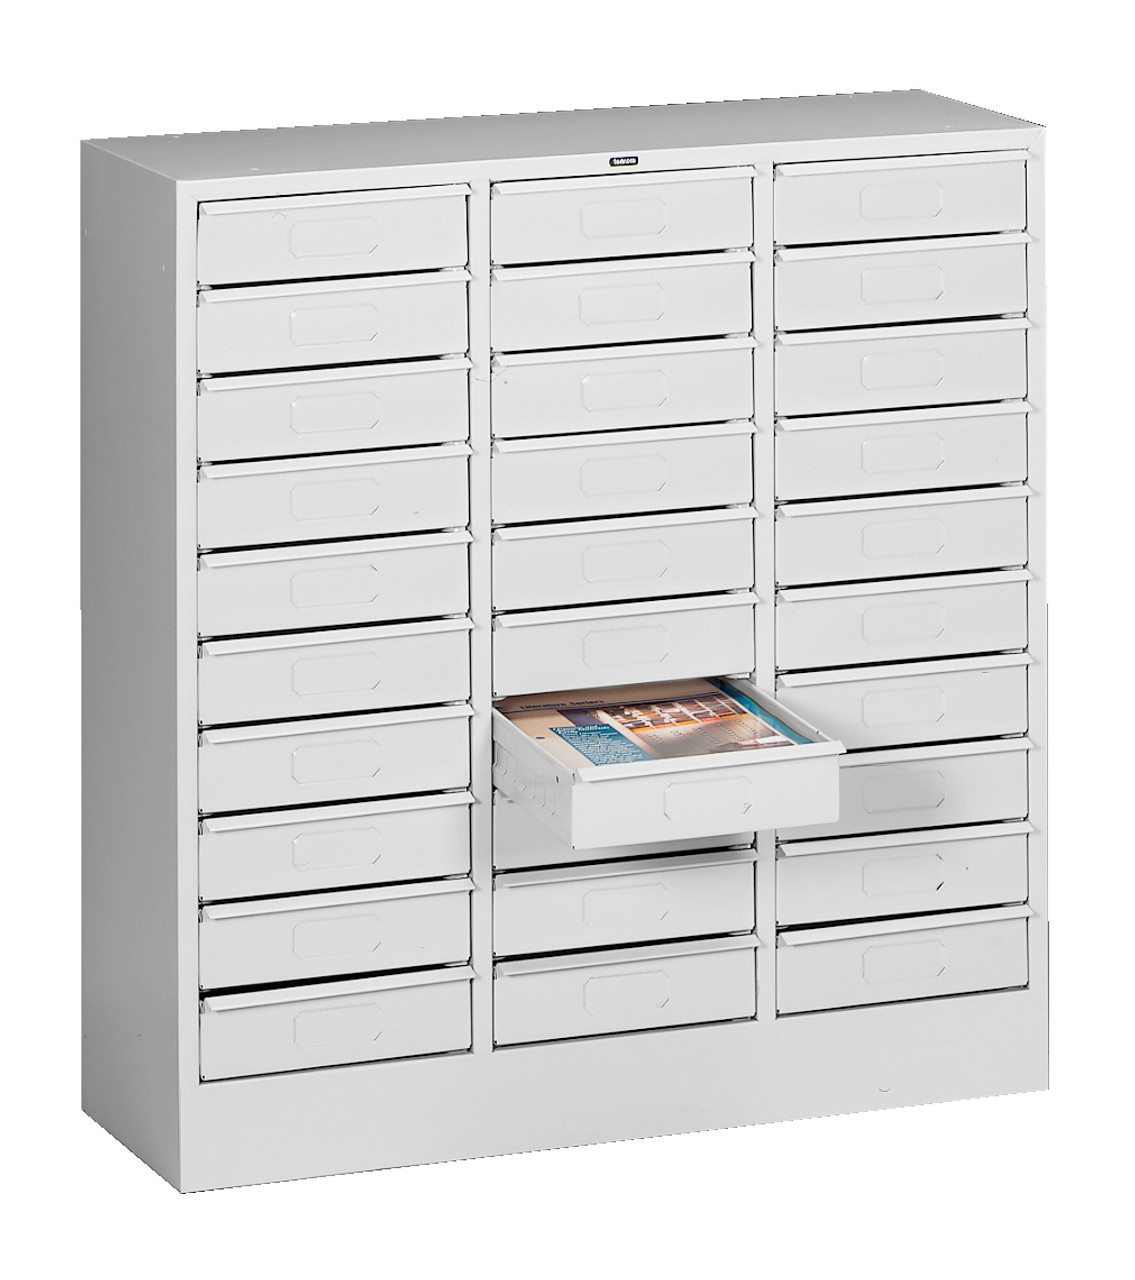 Tennsco 36 Letter Size 36 Drawer Organizer 36x36.36x36